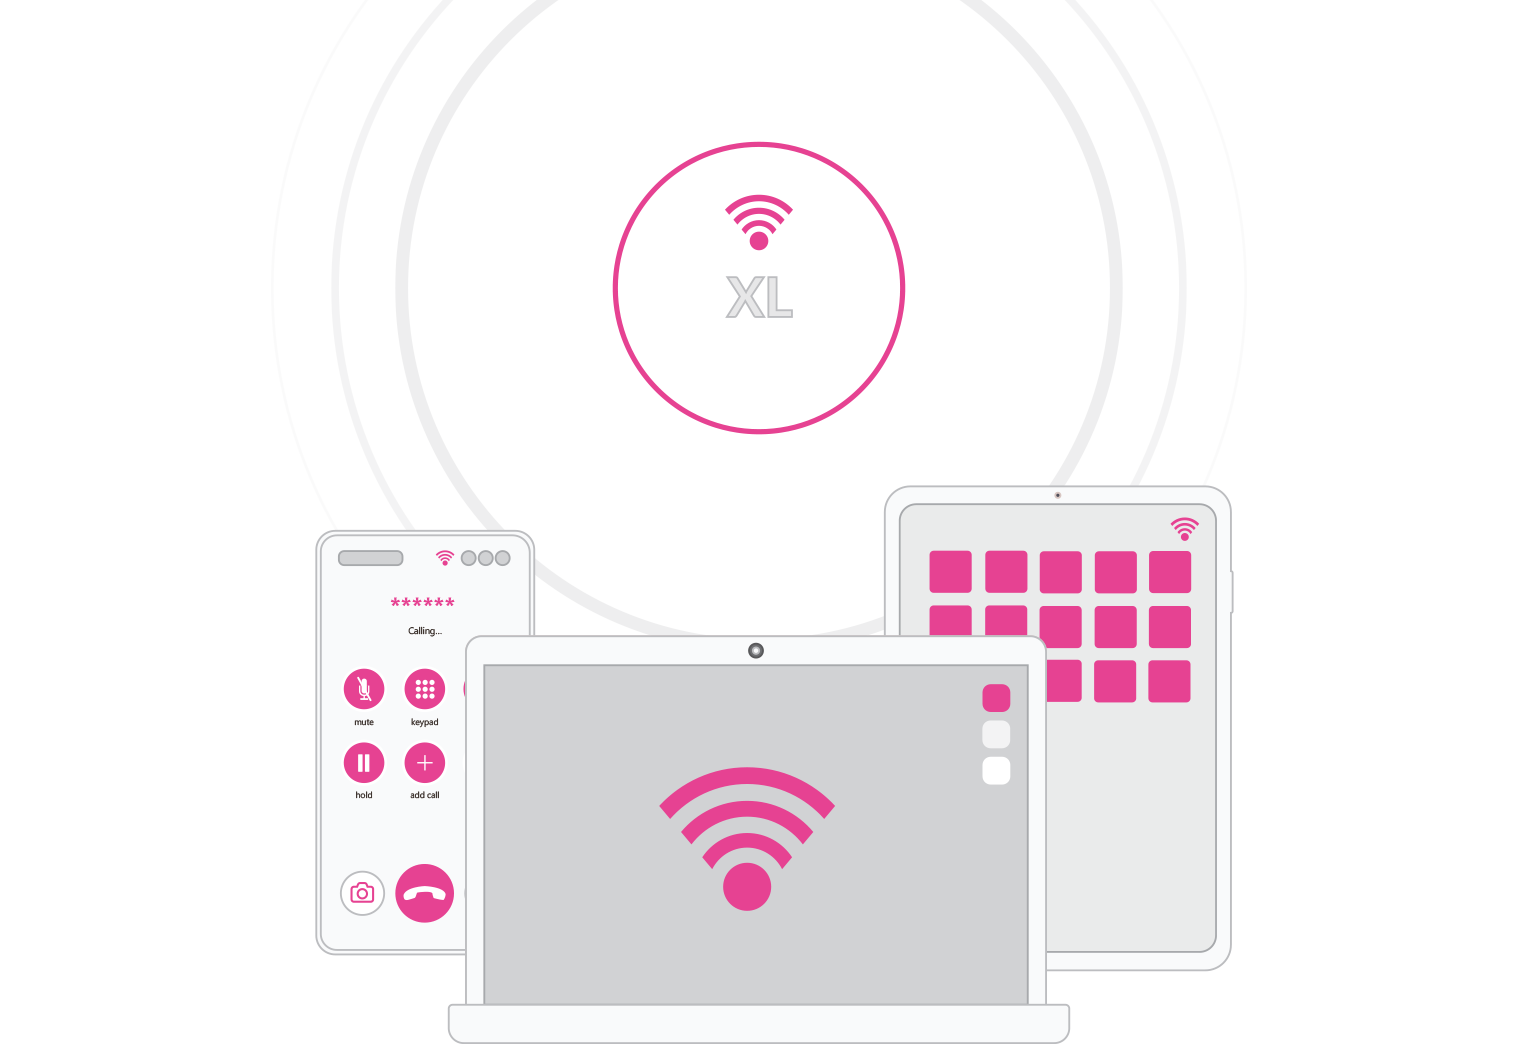 Why NetXL for WiFi Network Hardware?